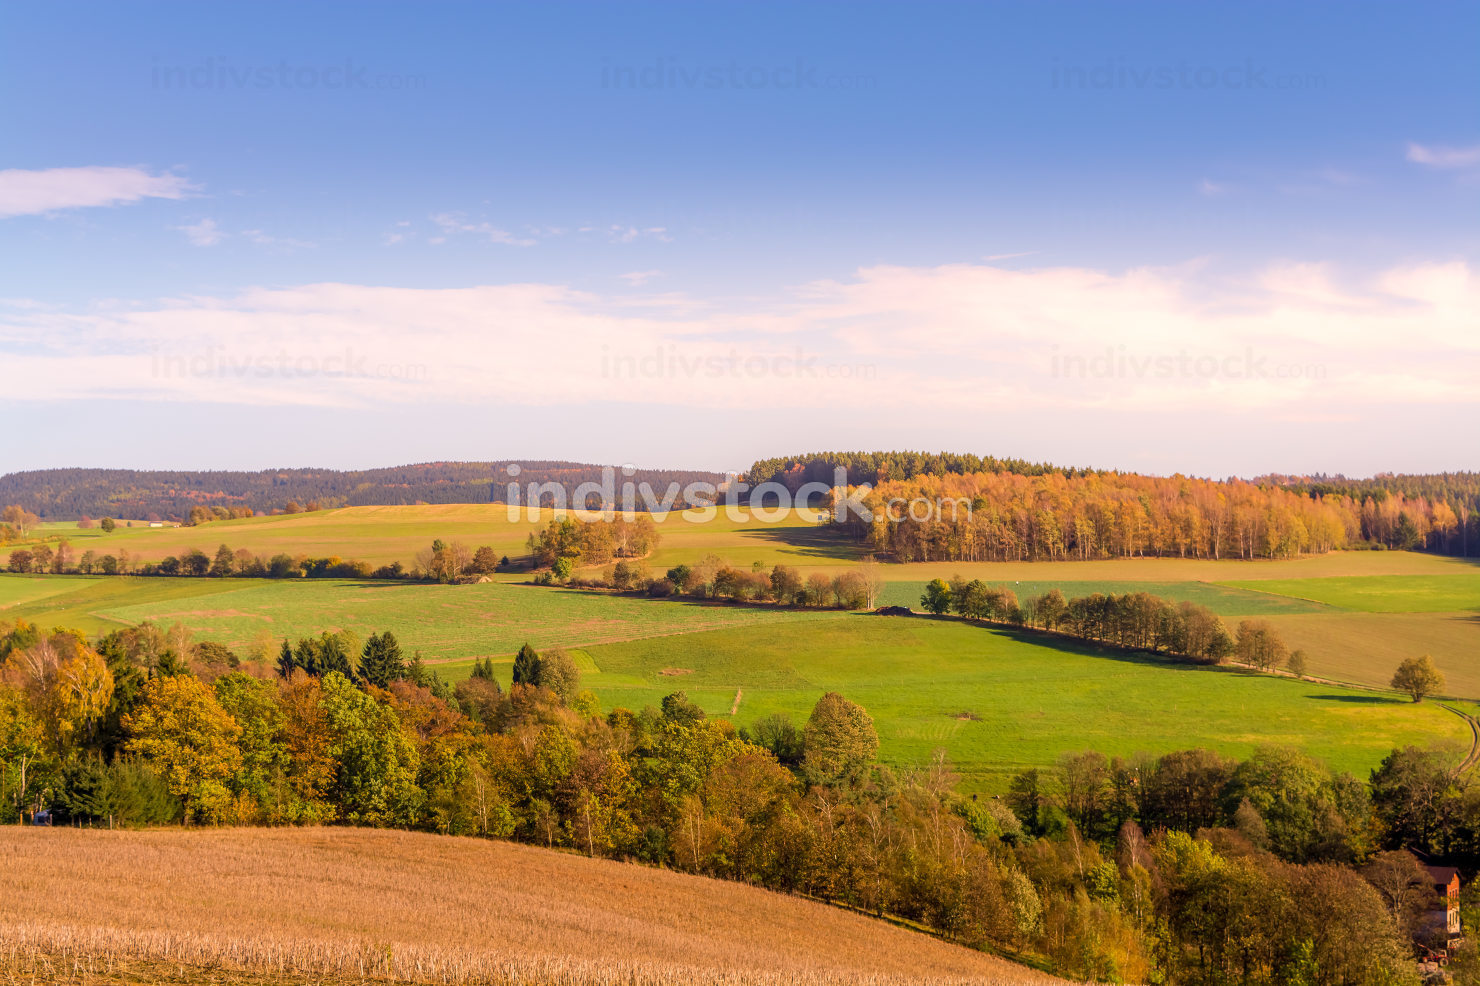 Autumn landscape with colorful foliage on trees